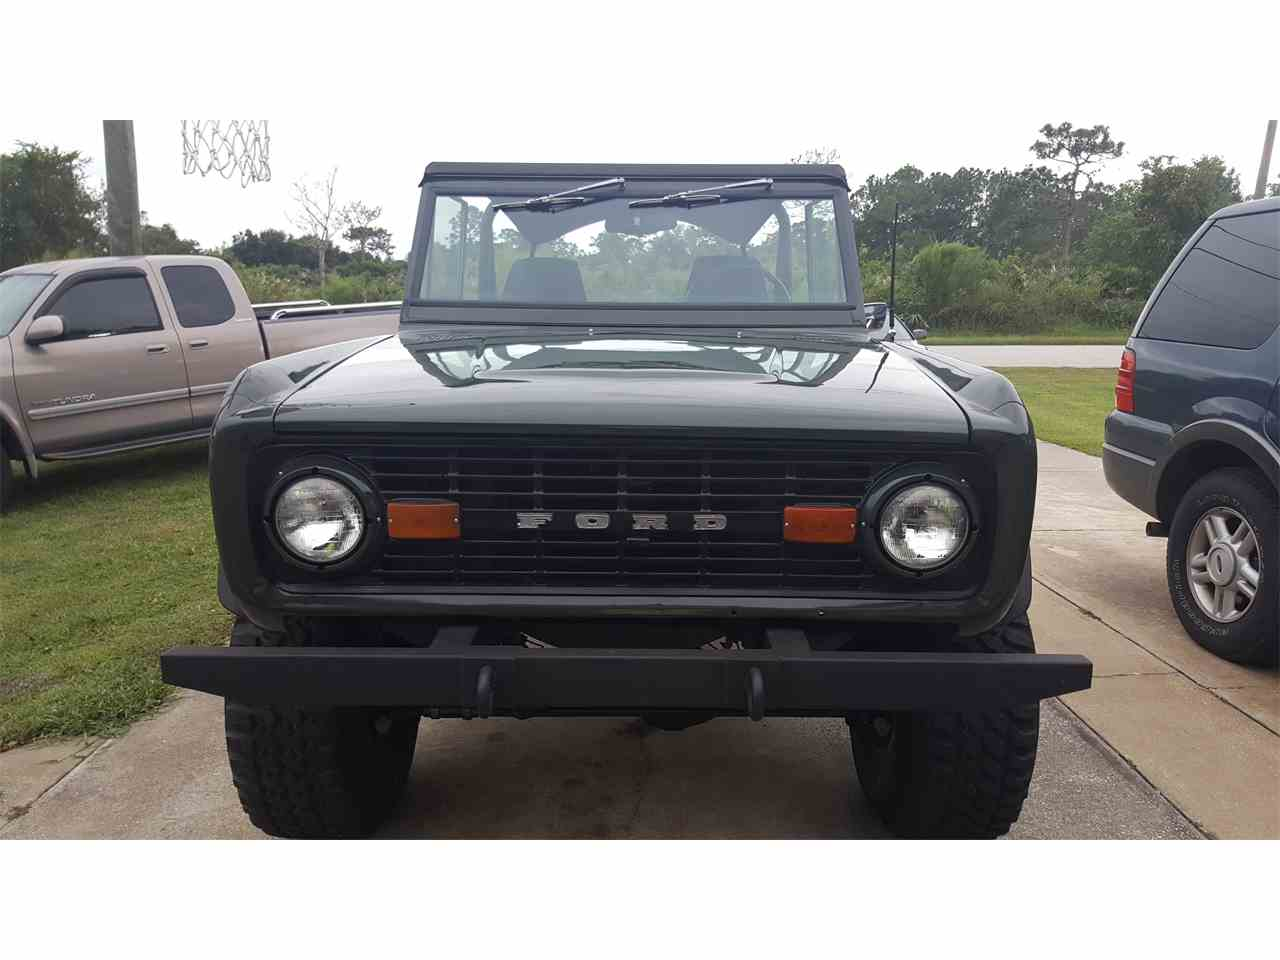 Large Picture of '69 Ford Bronco located in New Jersey Offered by a Private Seller - KKTT